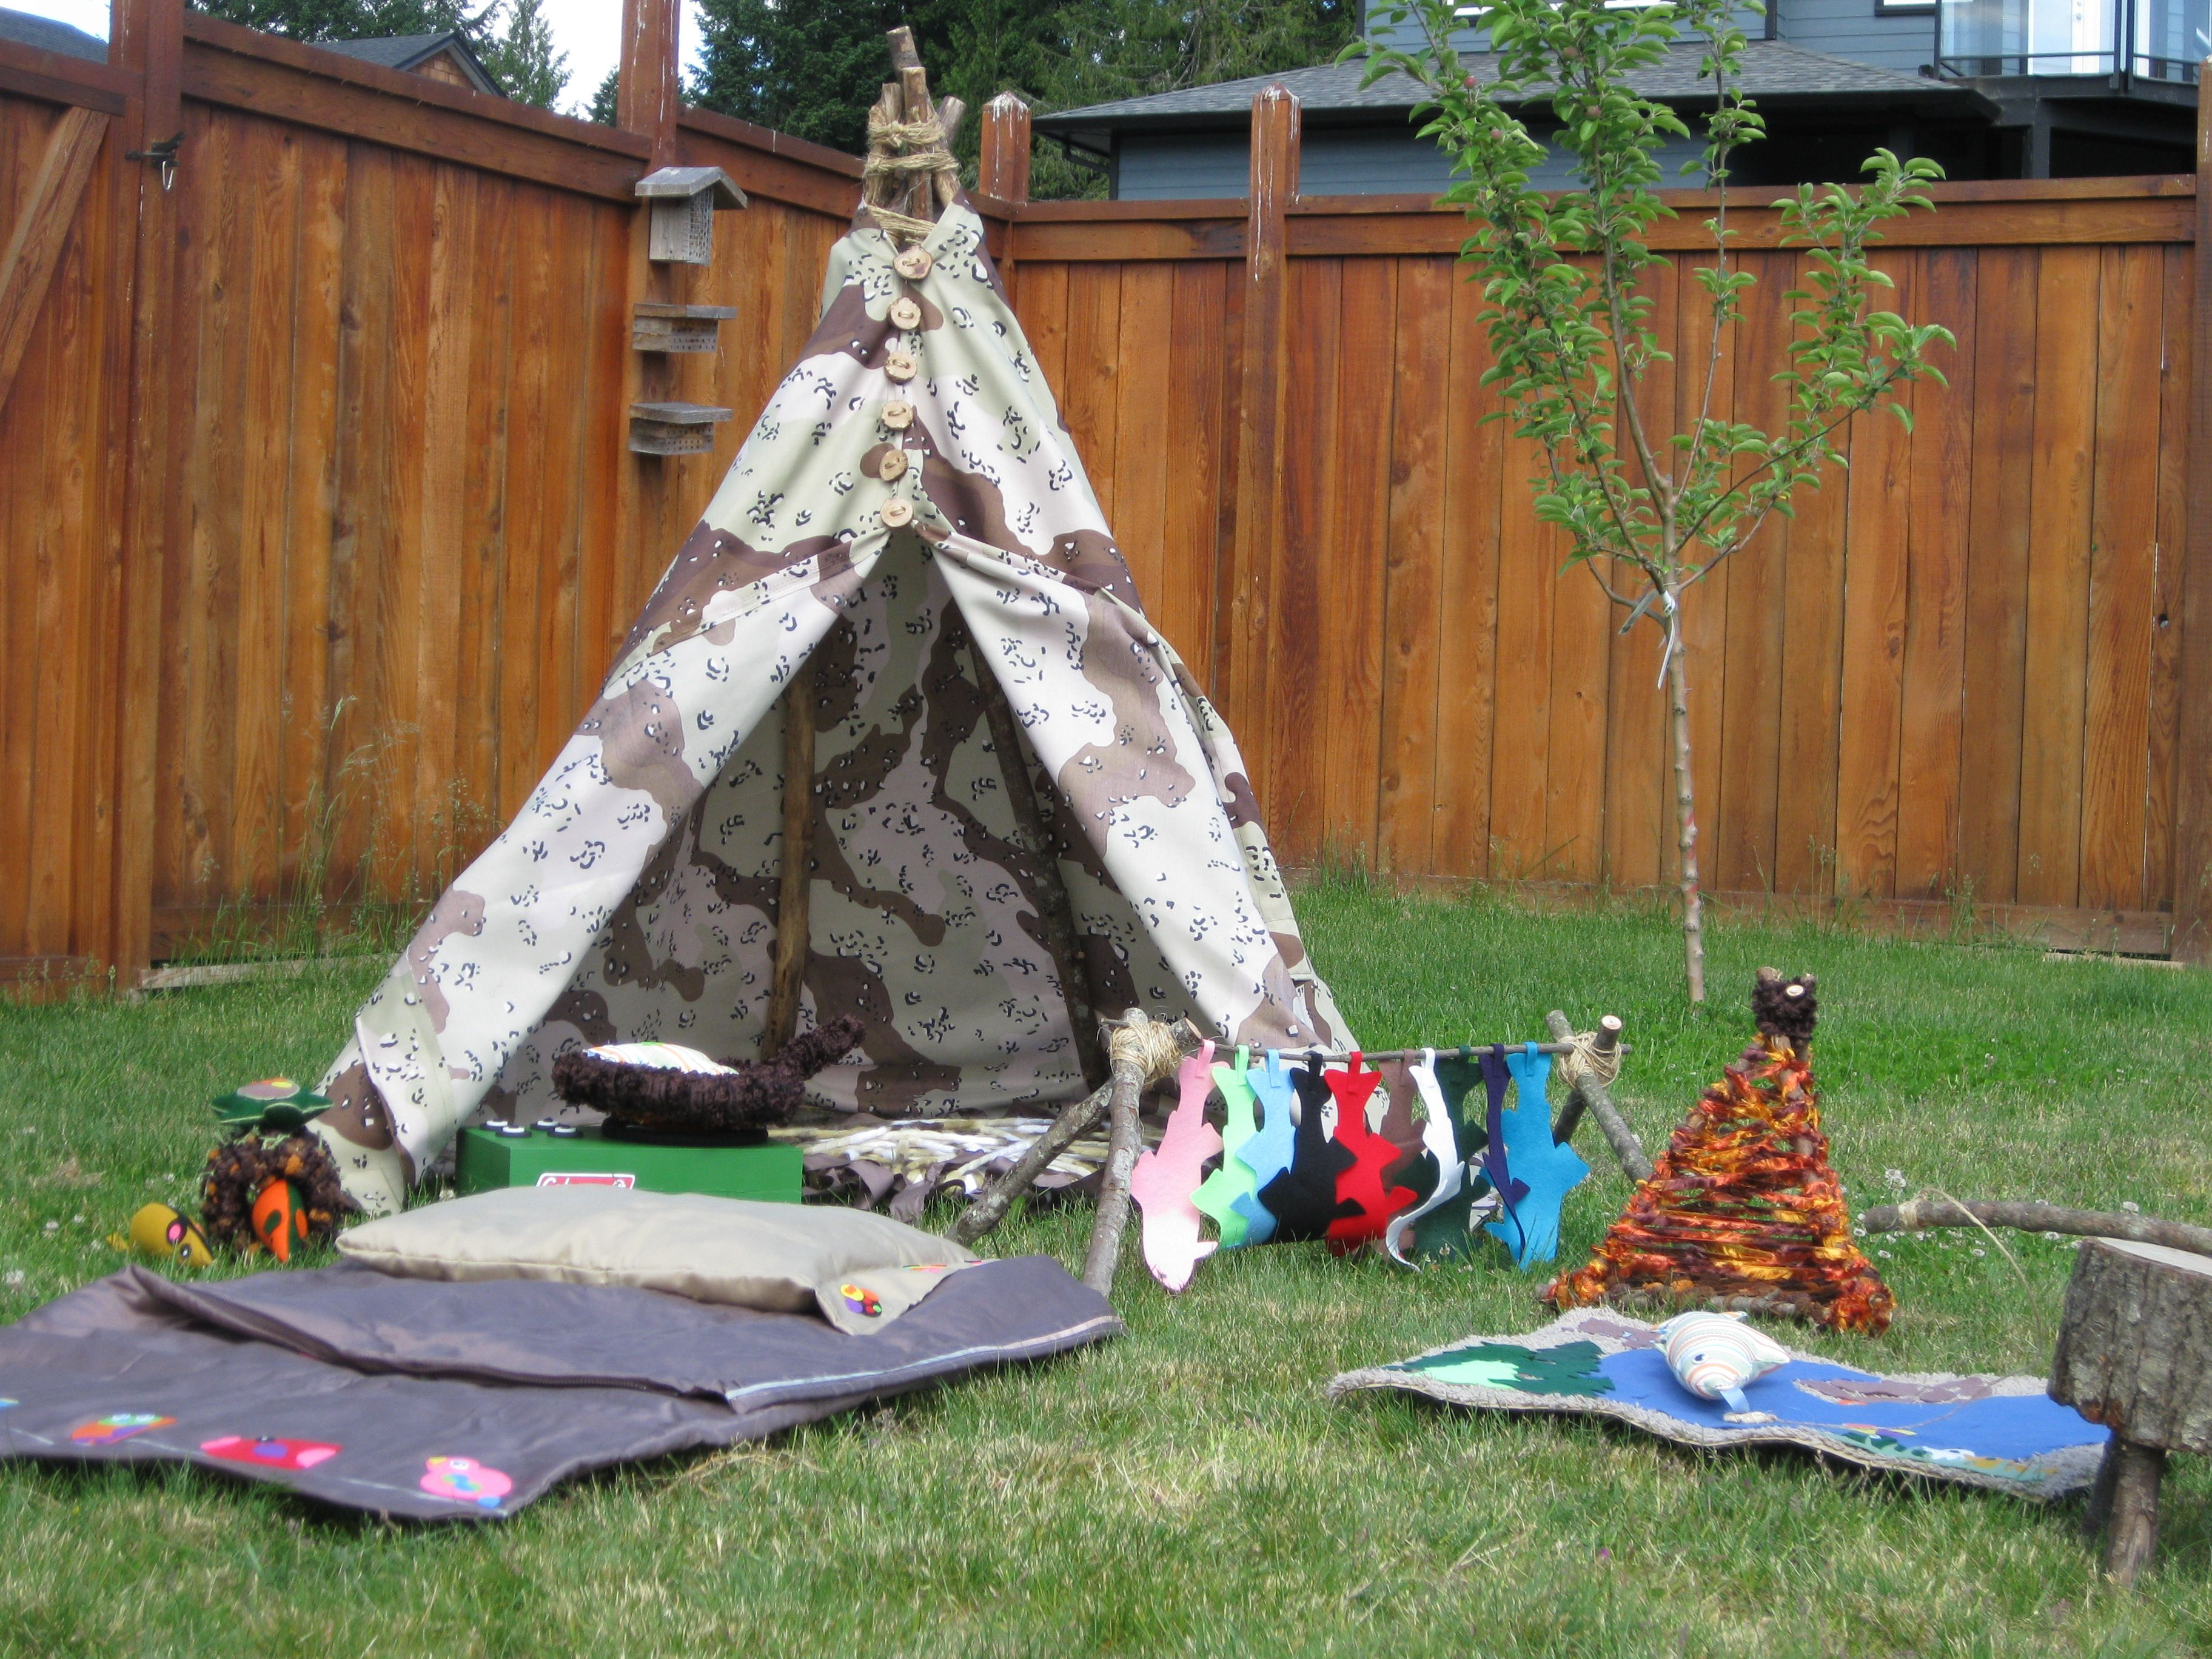 Tent camping equipment and supplies for toddler